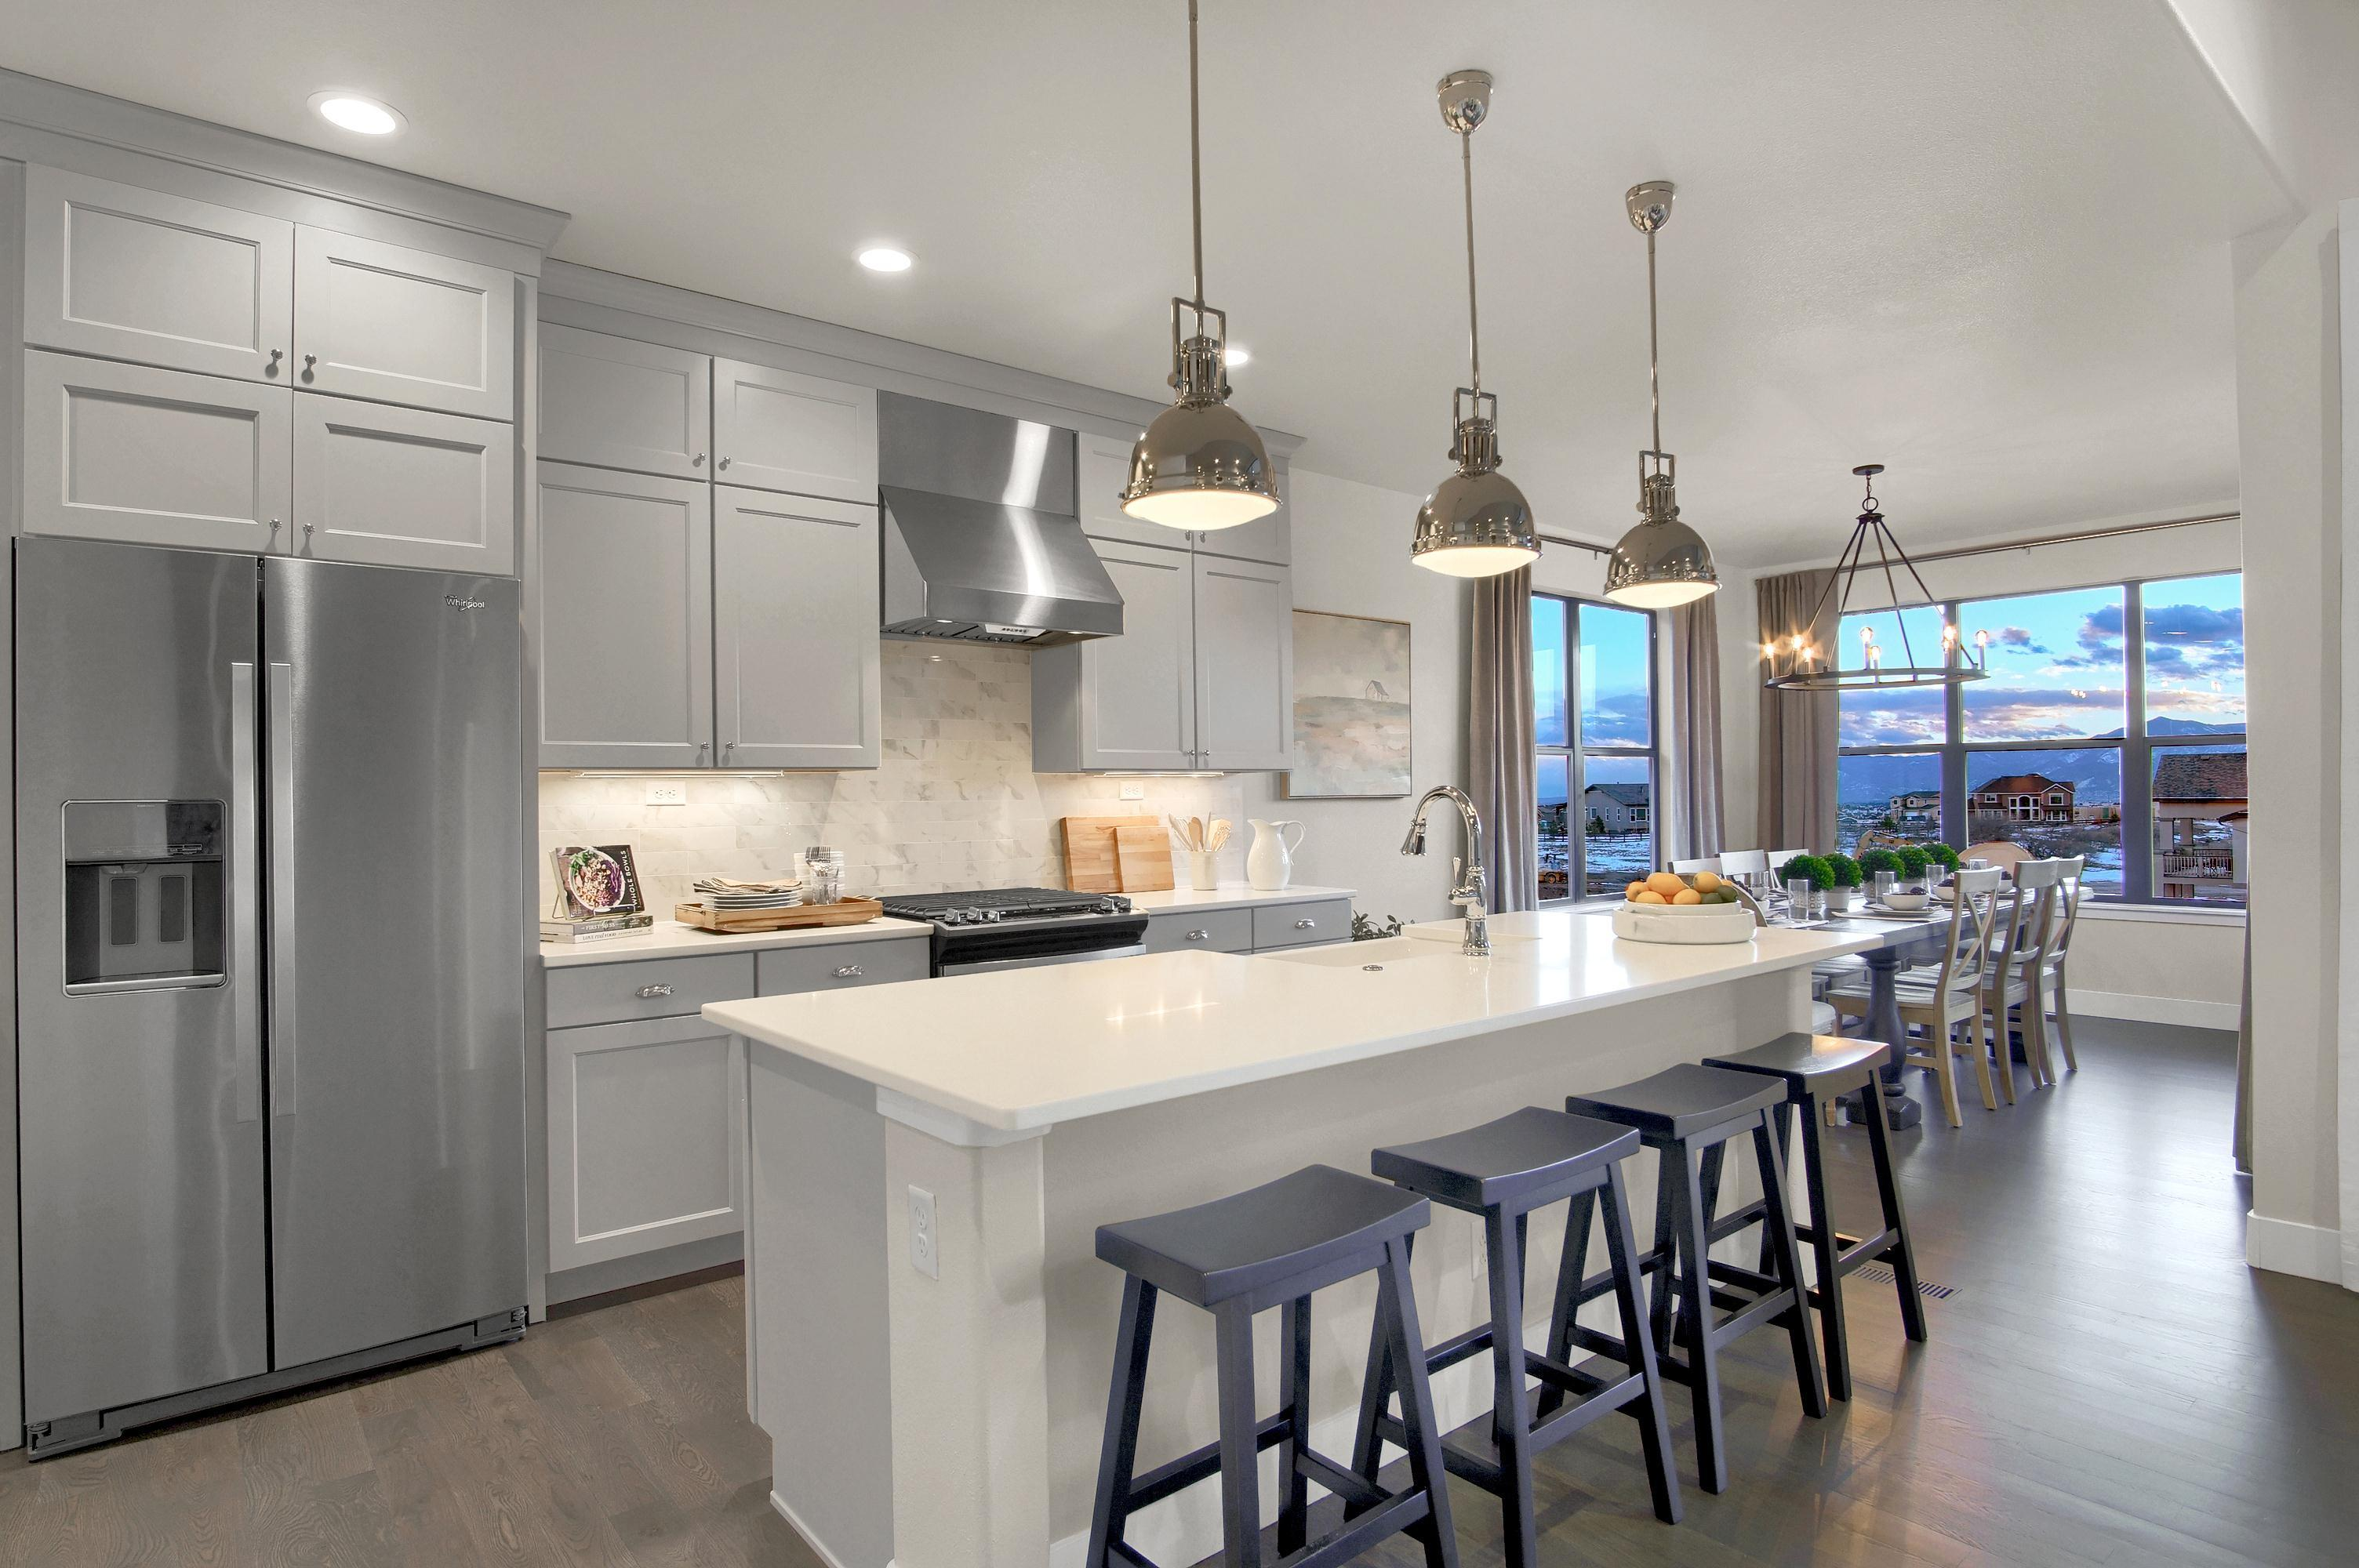 Kitchen featured in the Mackintosh By Keller Homes, A Toll Bros. Co. in Colorado Springs, CO